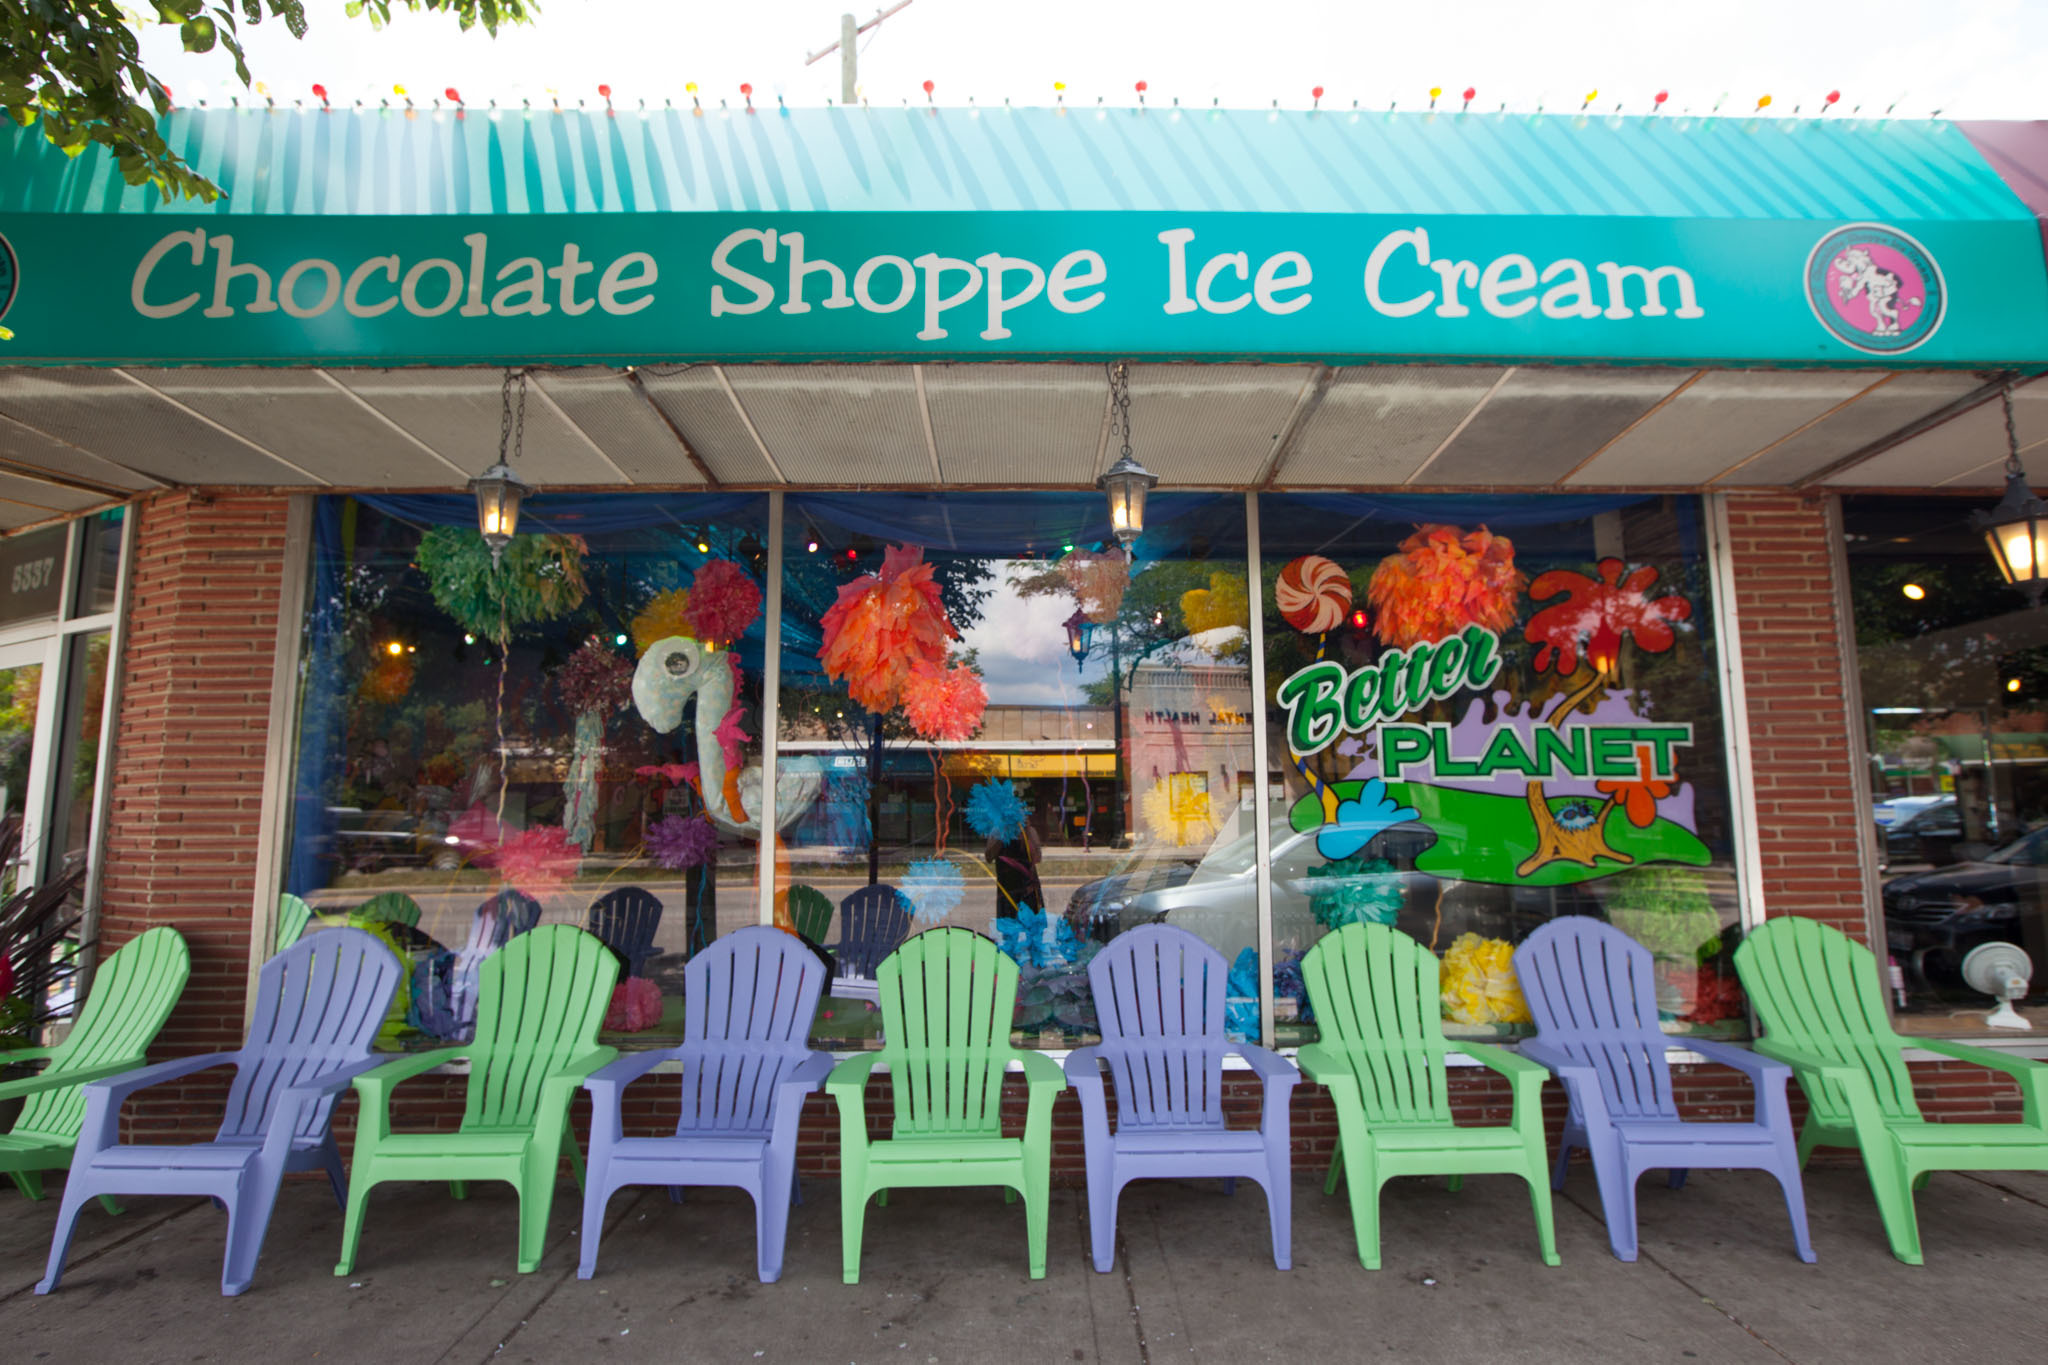 Chocolate Shoppe Ice Cream | Restaurants in Sauganash, Forest Glen ...